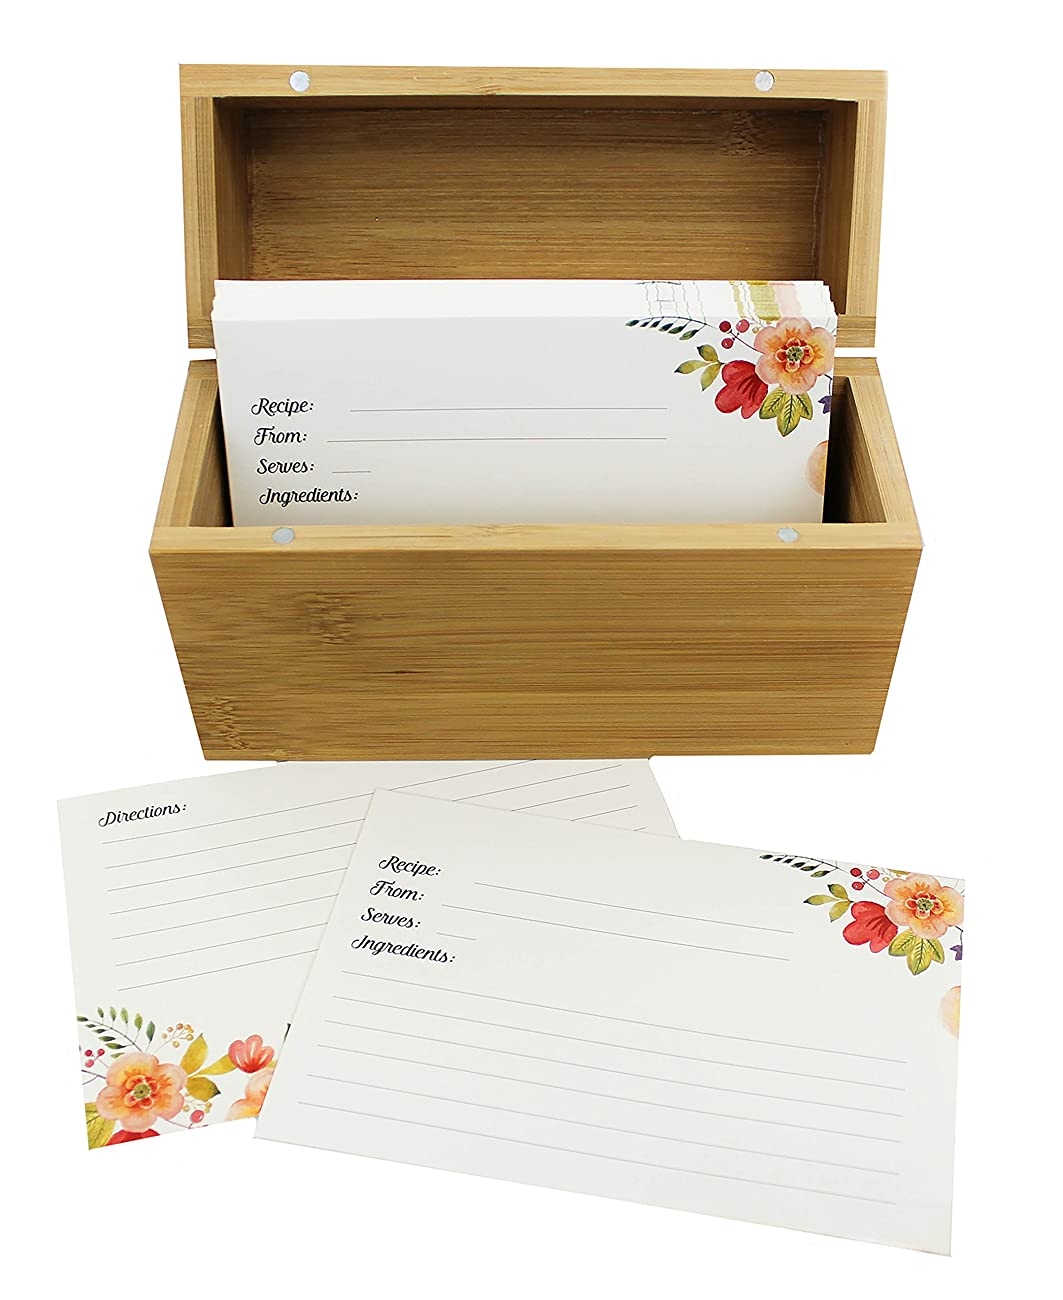 Bamboo Recipe Box Set With 100 Recipe Cards & 10 Blank Dividers | Holds Up To 200, 4x6 Cards | From Splendid Chef 0